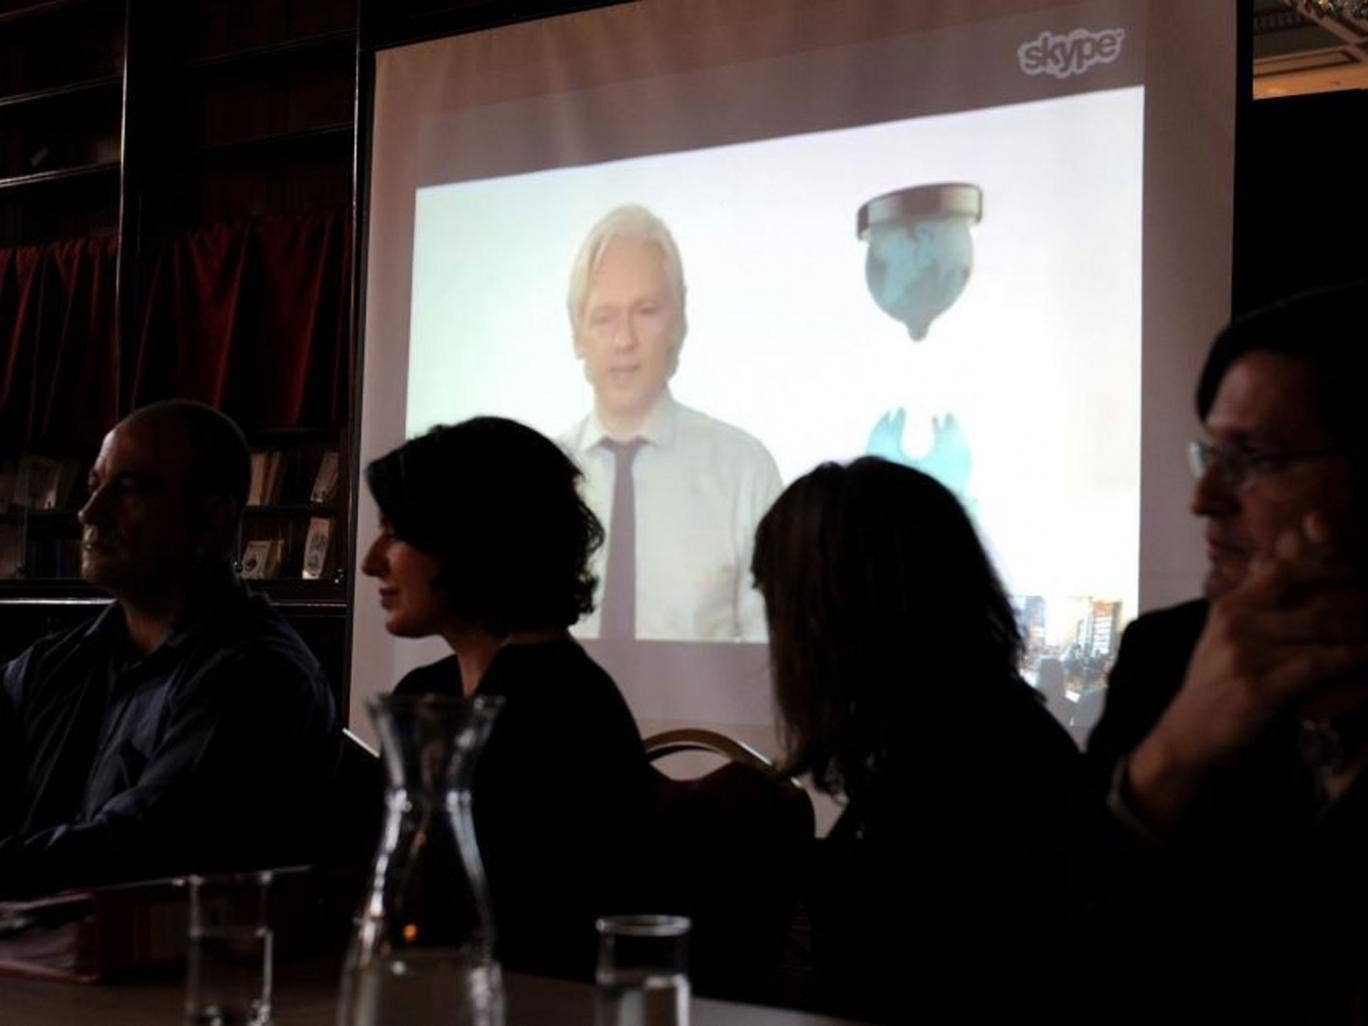 Wikileaks Party candidate Julian Assange speaks from London during the official launch and announcement of Senate candidates in Melbourne, Australia